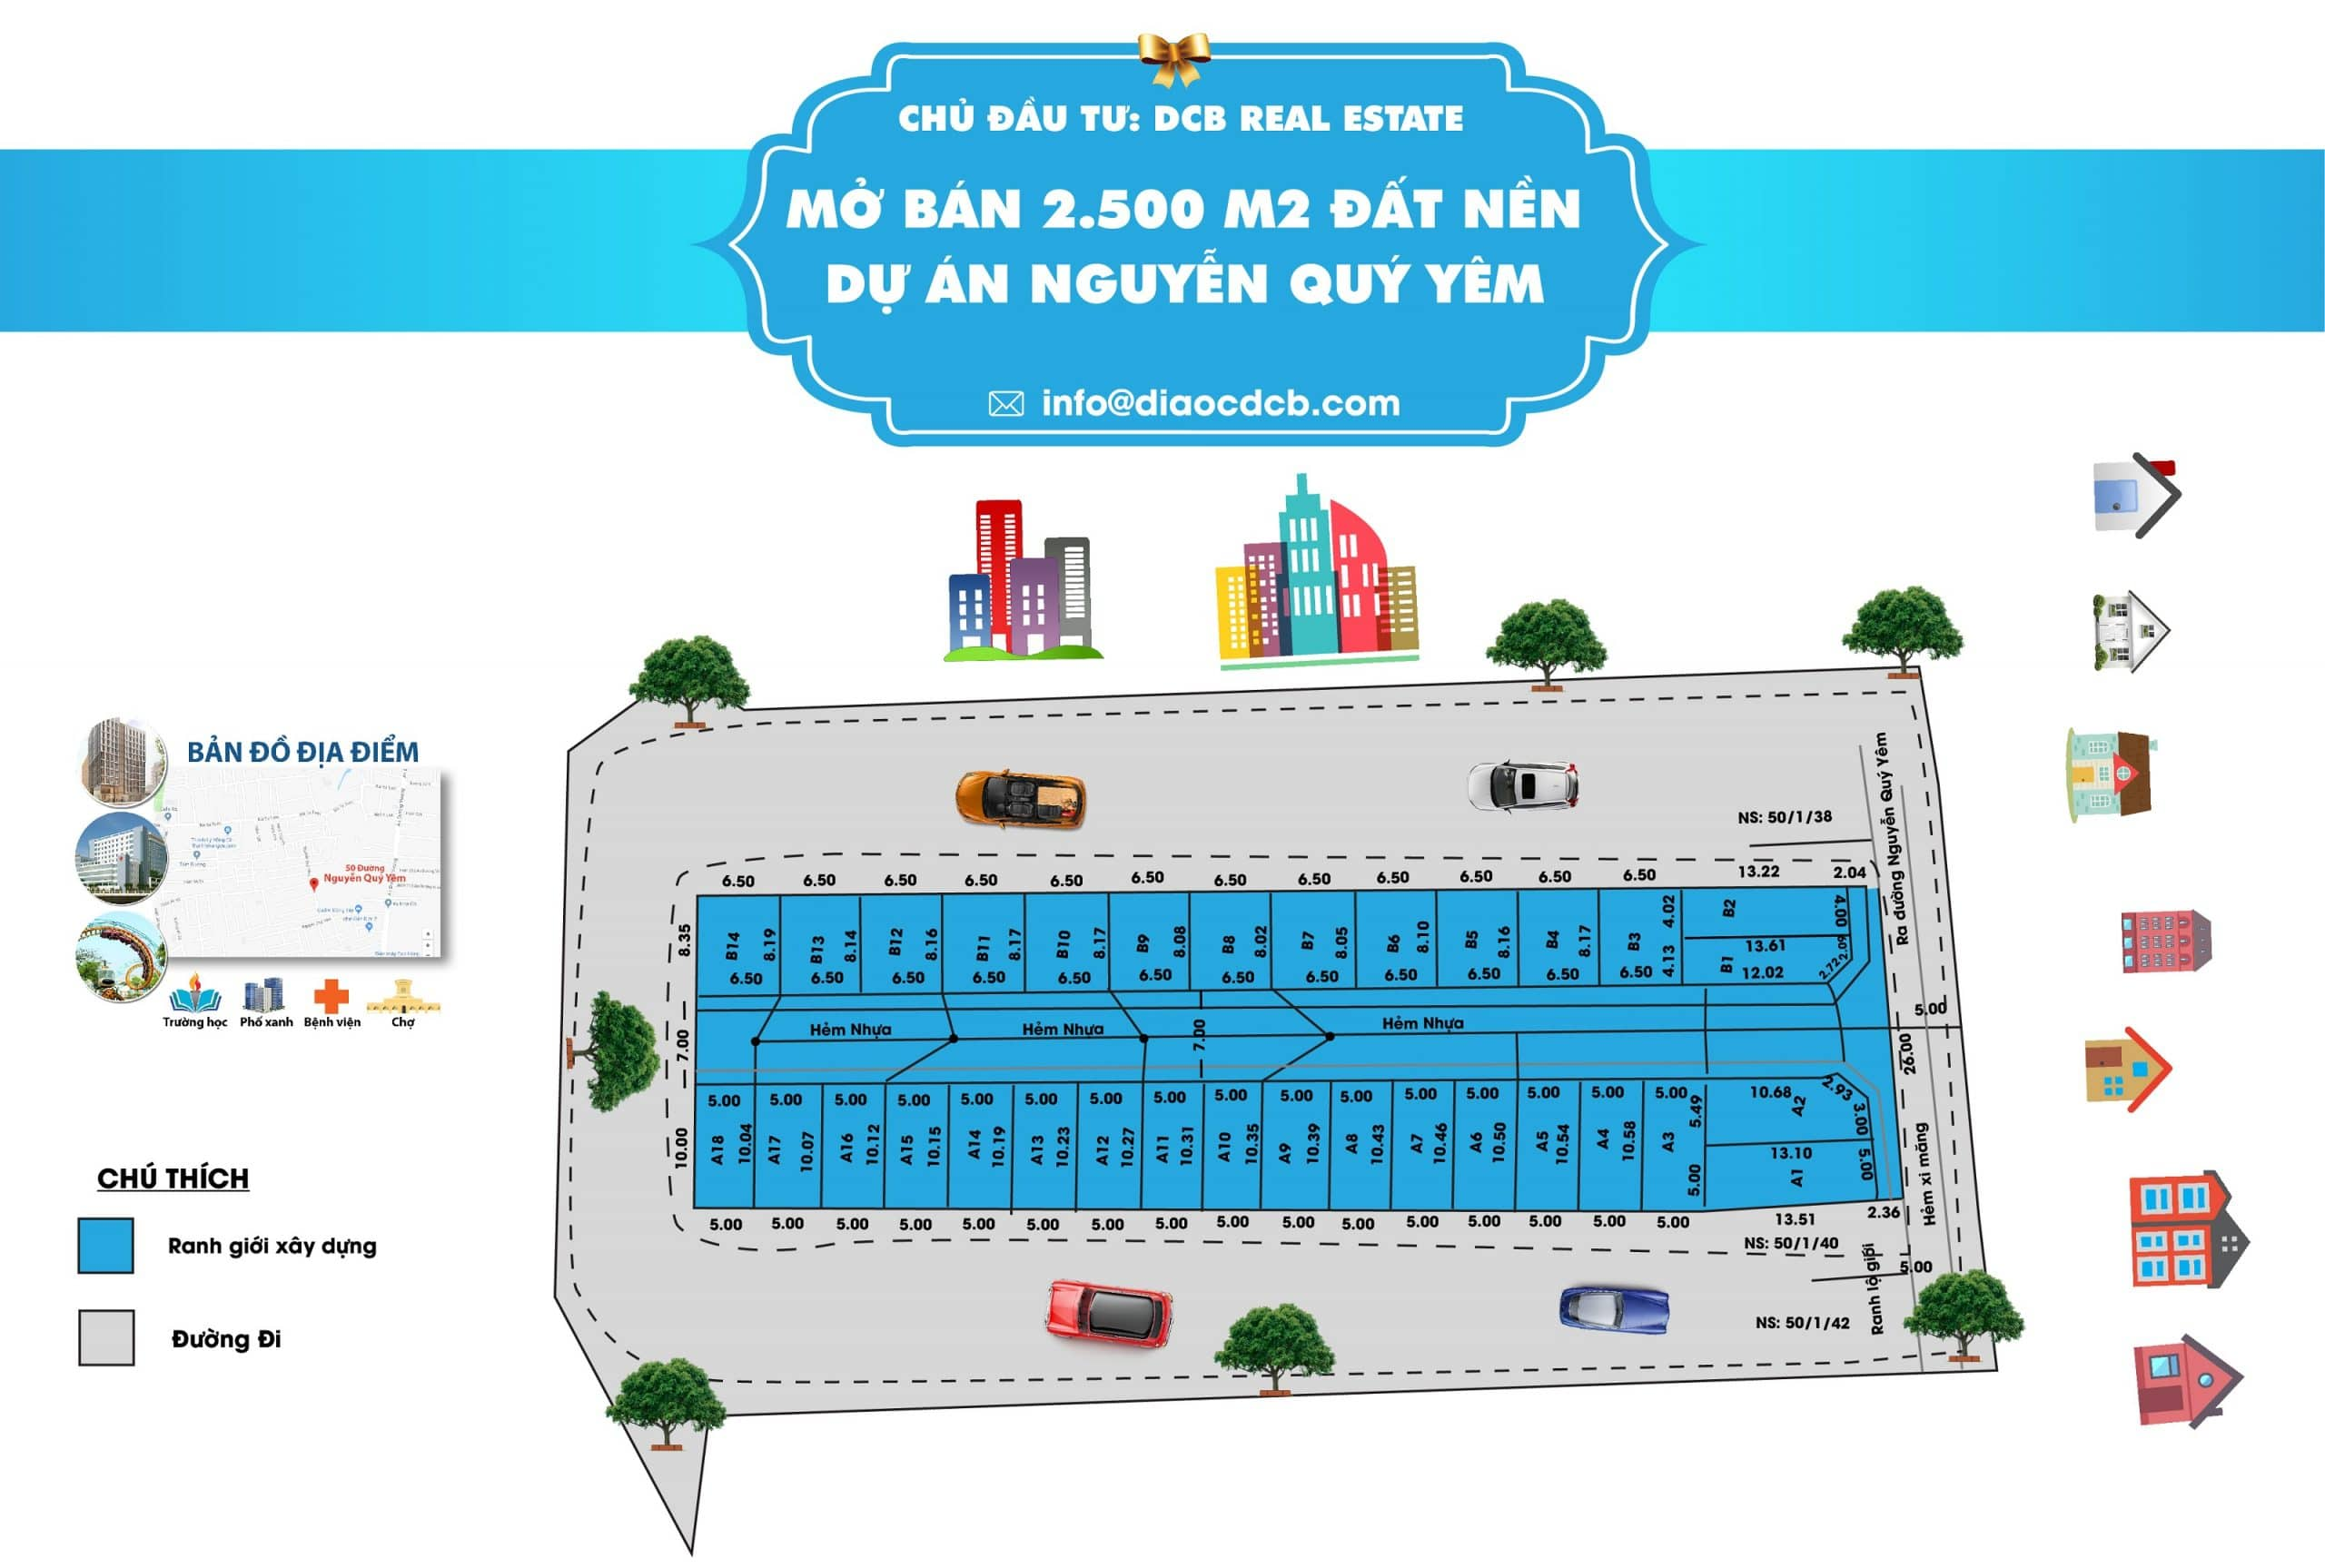 Thiết kế Inforgraphic DCB Real Estate